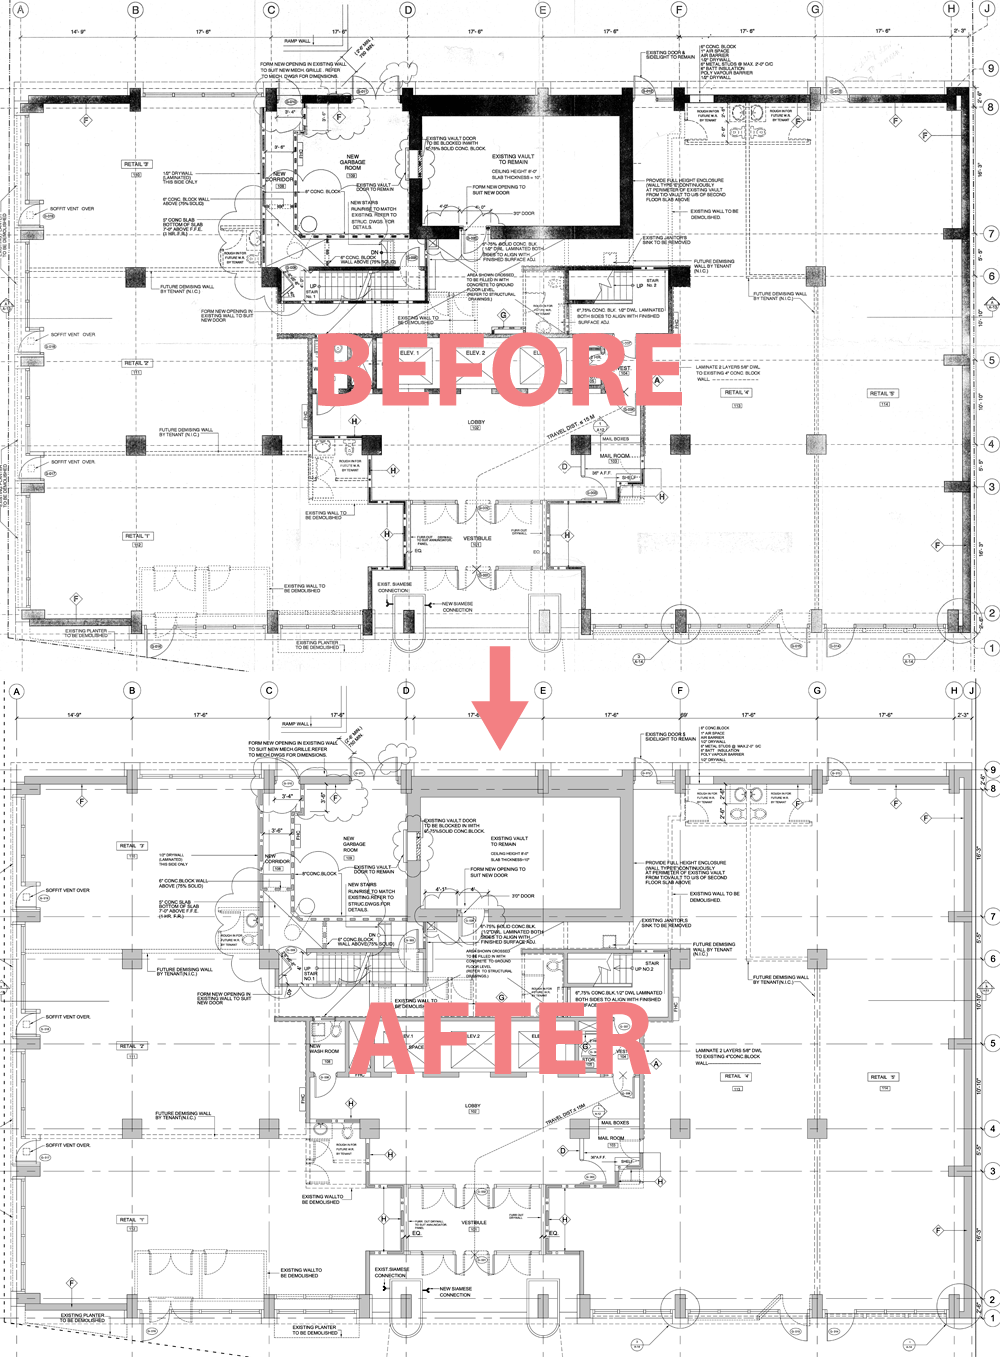 1st Floor Electrical Plan further Boiler House Schematic besides Herringbone Granite Stone Hatch besides Glass Block In Cmu Wall as well Restaurant Floor Plan Maker Fr 473cb4. on autocad electrical drawing symbols